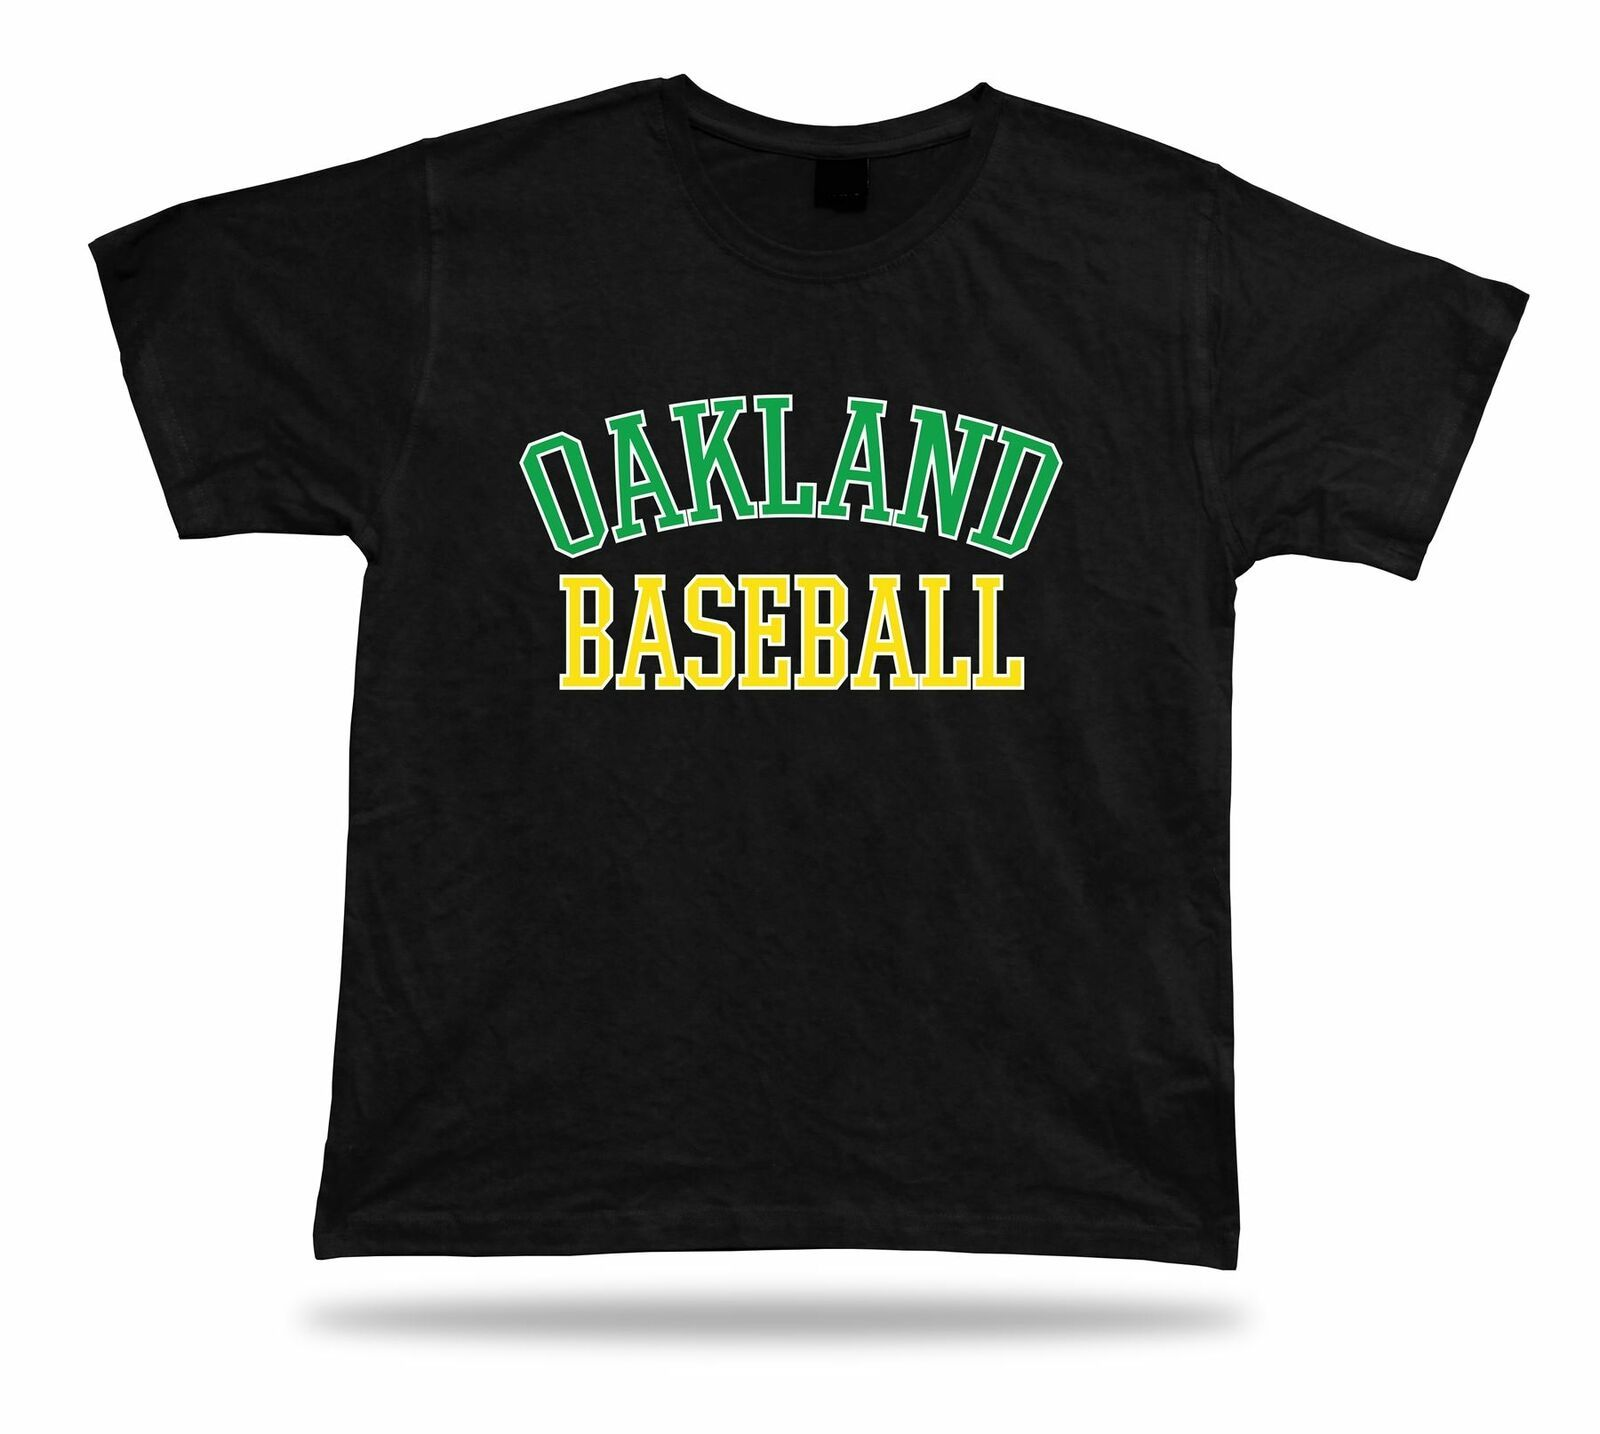 Primary image for Oakland BASEBALL t-shirt tee green white yellow CA USA summer apparel field